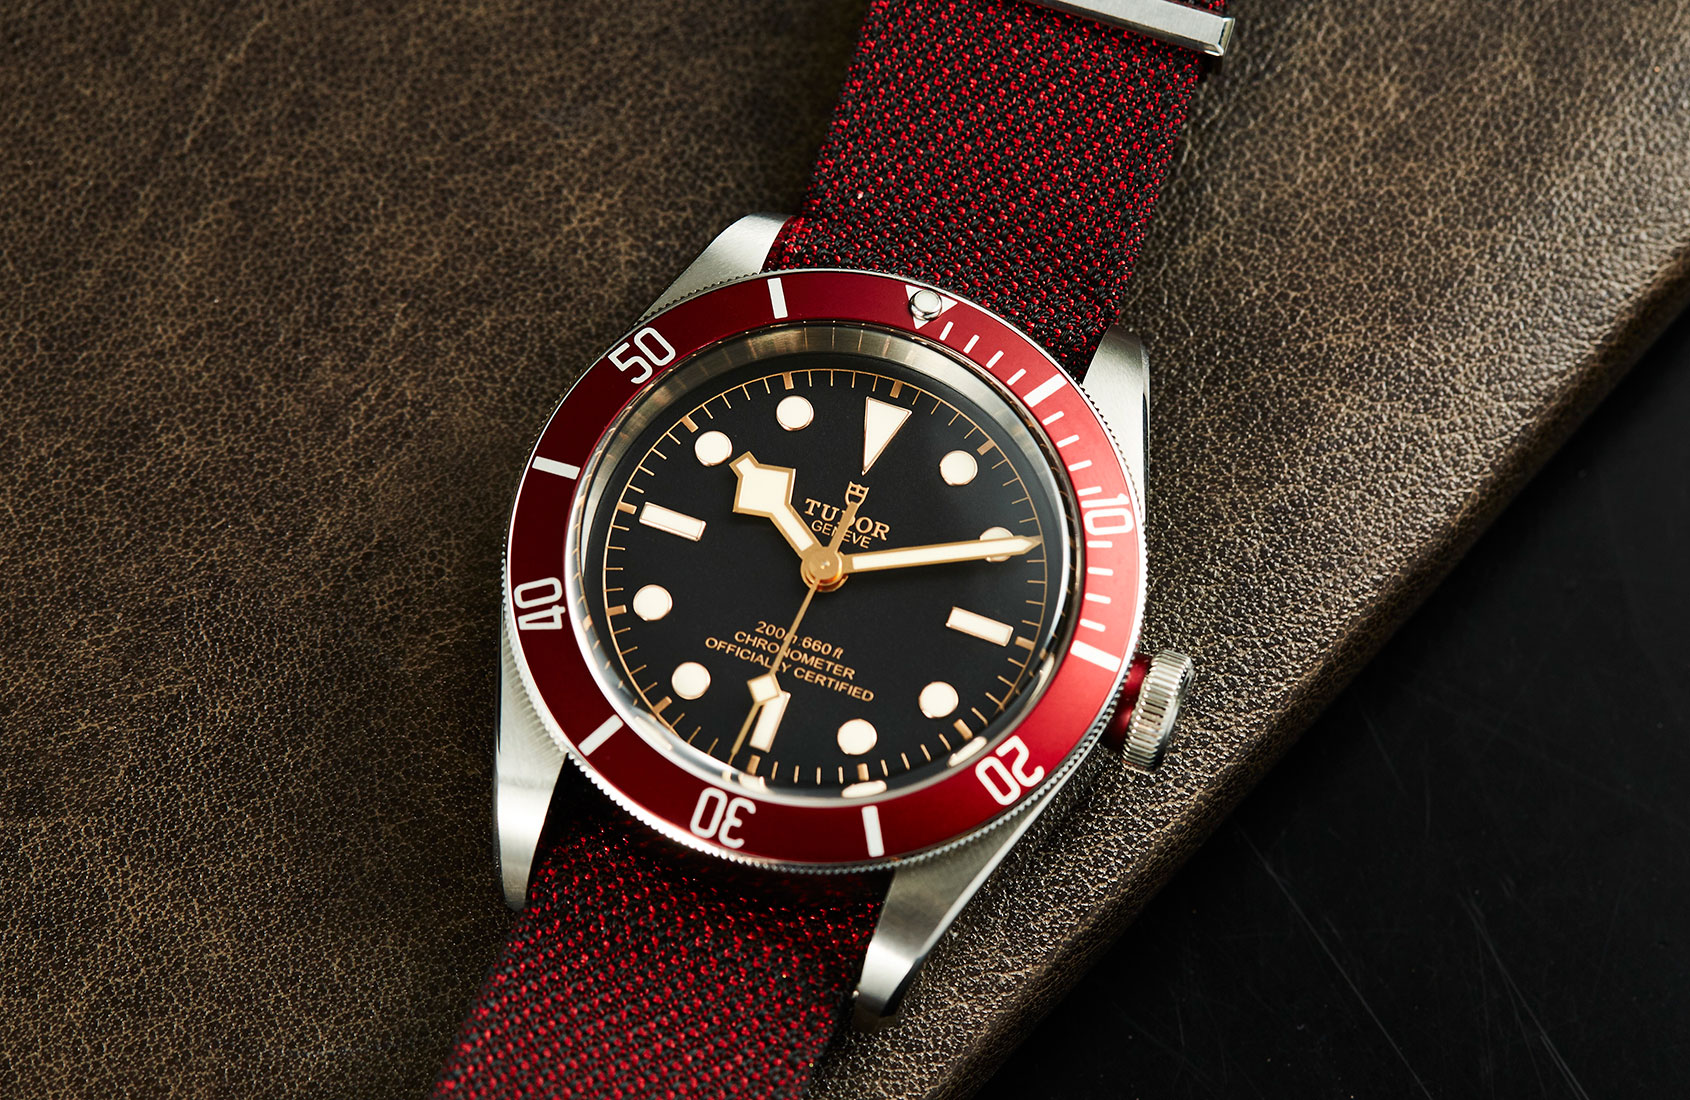 2021 Watch Predictions: Will the Tudor Black Bay 58 replace the 41mm line-up?